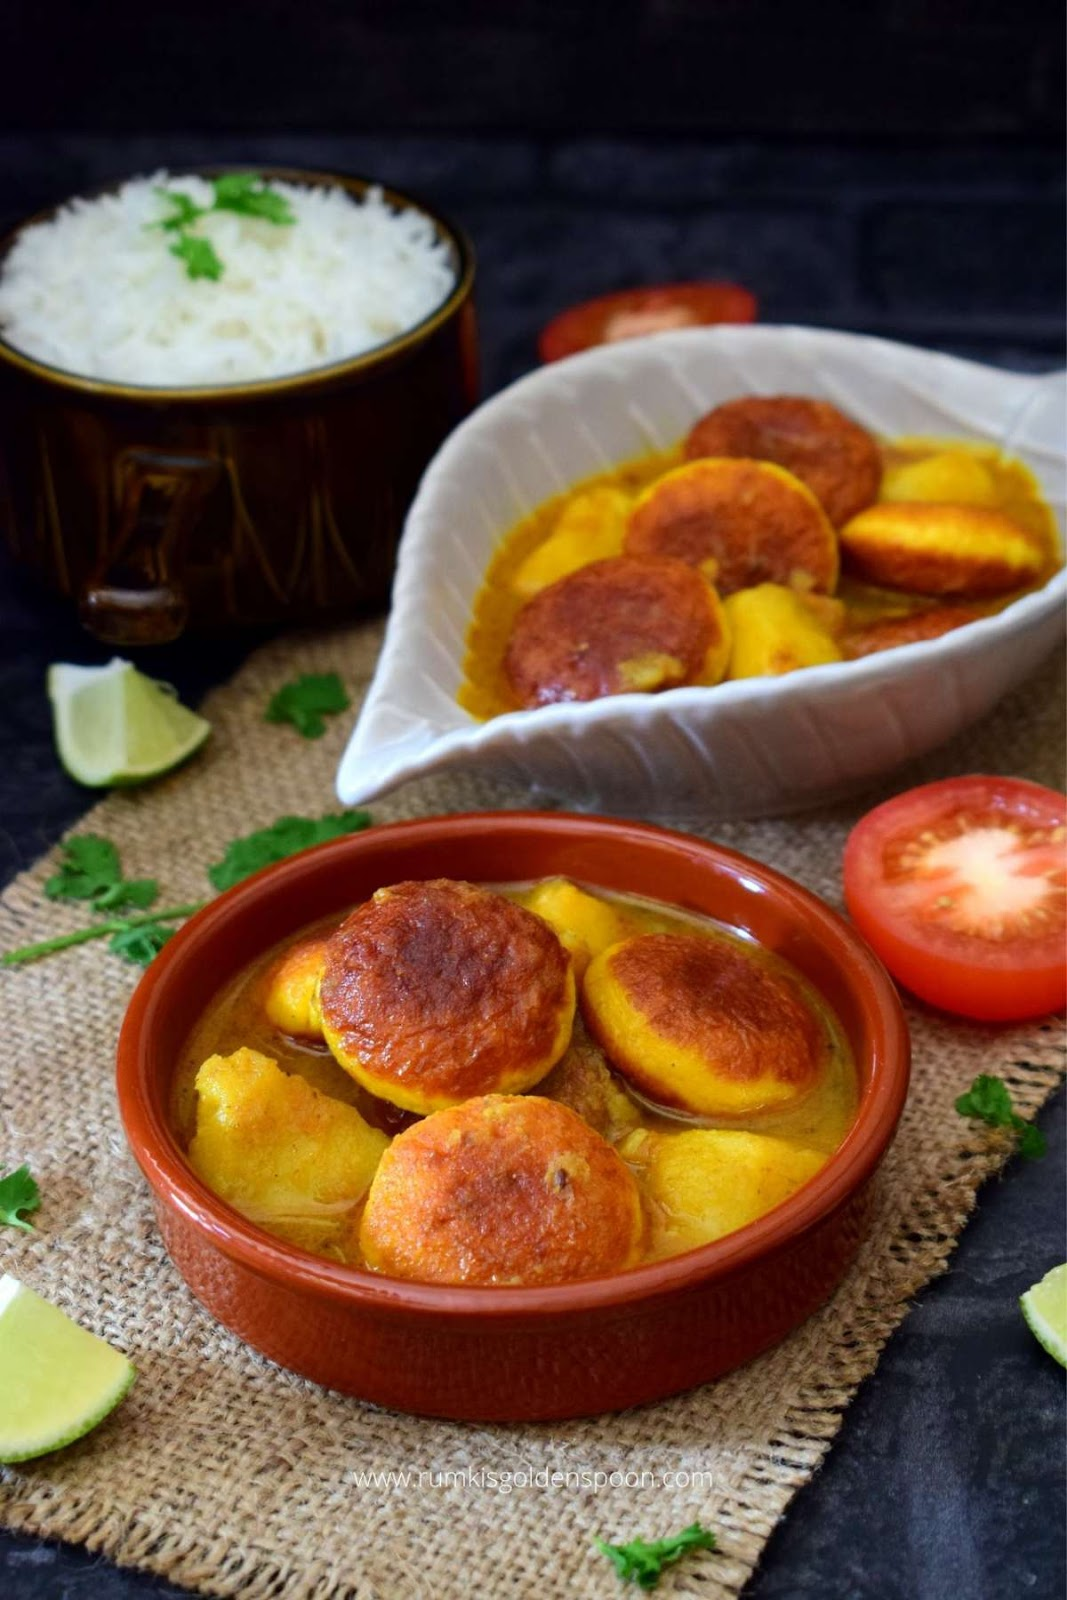 chanar dalna, chanar dalna recipe, chanar dalna Bengali recipe, how to make chanar dalna, chanar borar jhol, Bengali cottage cheese curry, bengali recipe, bengali recipes, bengali food, bengali food recipes, recipes of bengali food, traditional bengali food, bengali recipes veg, niramish tarkari, niramish recipe, bengali traditional food, traditional food of Bengali, bengali veg recipe, bengali veg recipes, bengali vegetable recipe, bengali vegetarian recipe, without onion garlic recipe, no onion no garlic recipe, vegetarian recipes of india, vegetarian recipes in India, Indian cottage cheese curry, Bengali cottage cheese and potato curry, Rumki's Golden Spoon